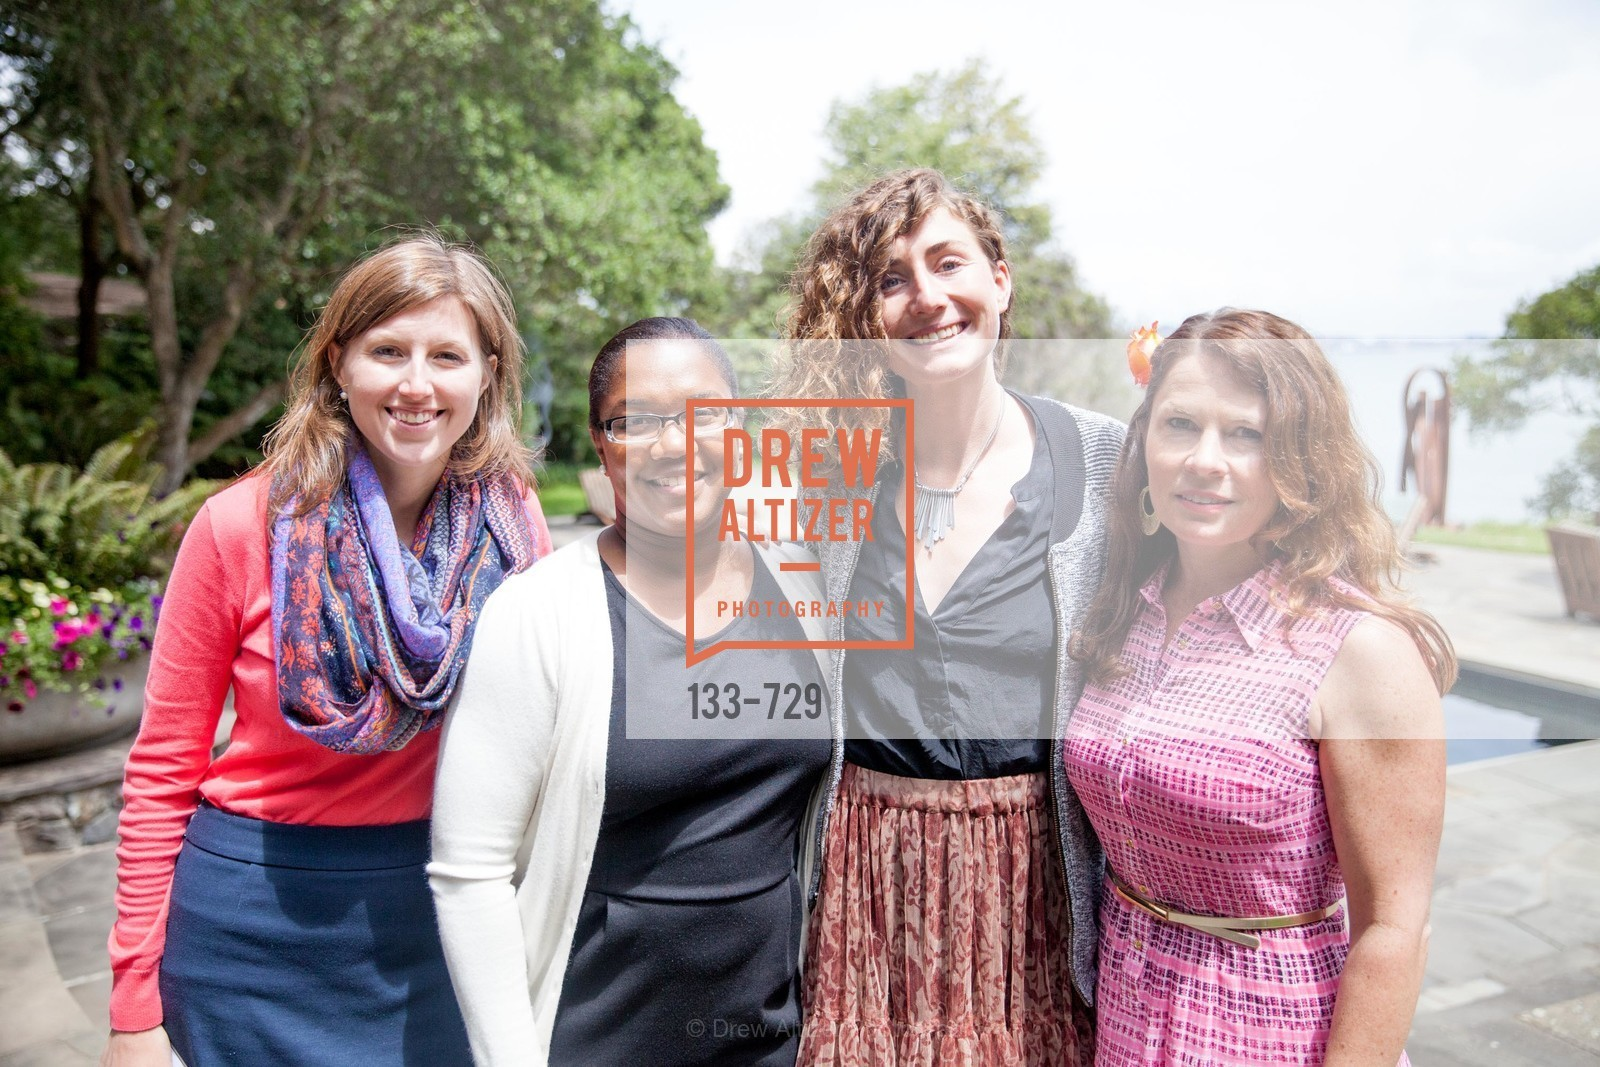 Megan O'Donahue, Carla Coleman, Isabelle Drever, Erin Caulfield, THE TRUST FOR PUBLIC LAND Luncheon Hosted by THE DREVER FAMILY FOUNDATION, US, May 14th, 2015,Drew Altizer, Drew Altizer Photography, full-service agency, private events, San Francisco photographer, photographer california